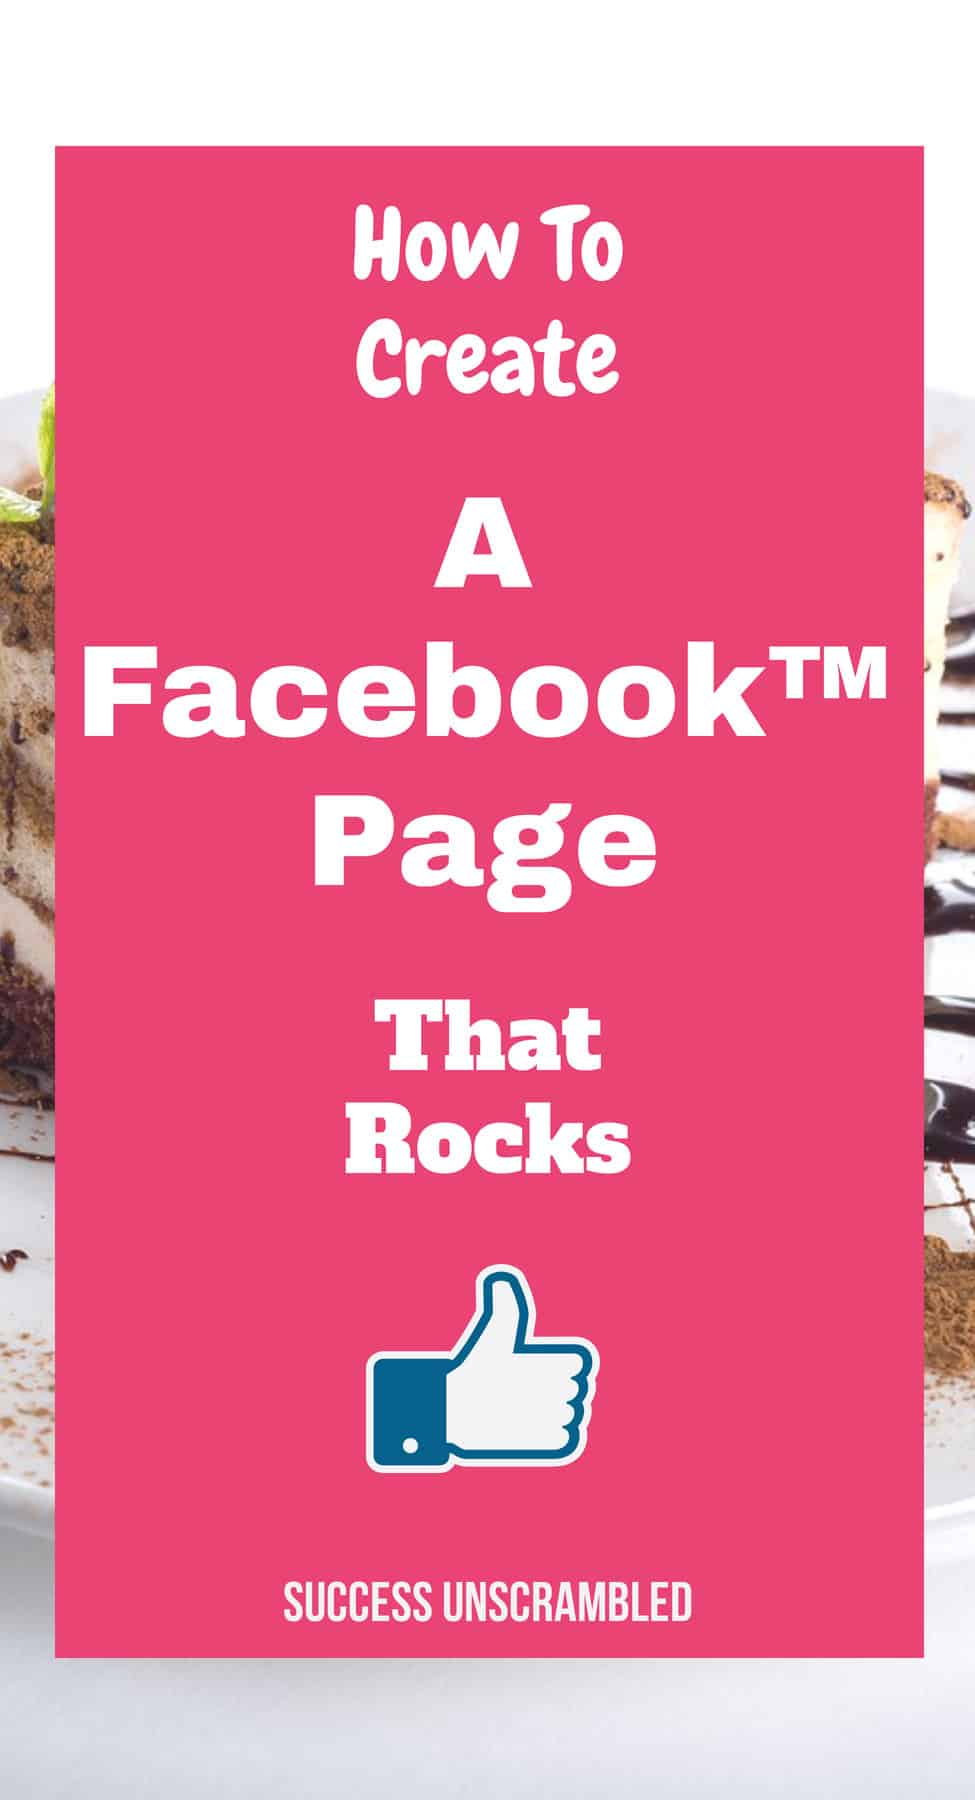 How to create a Facebook page that rocks